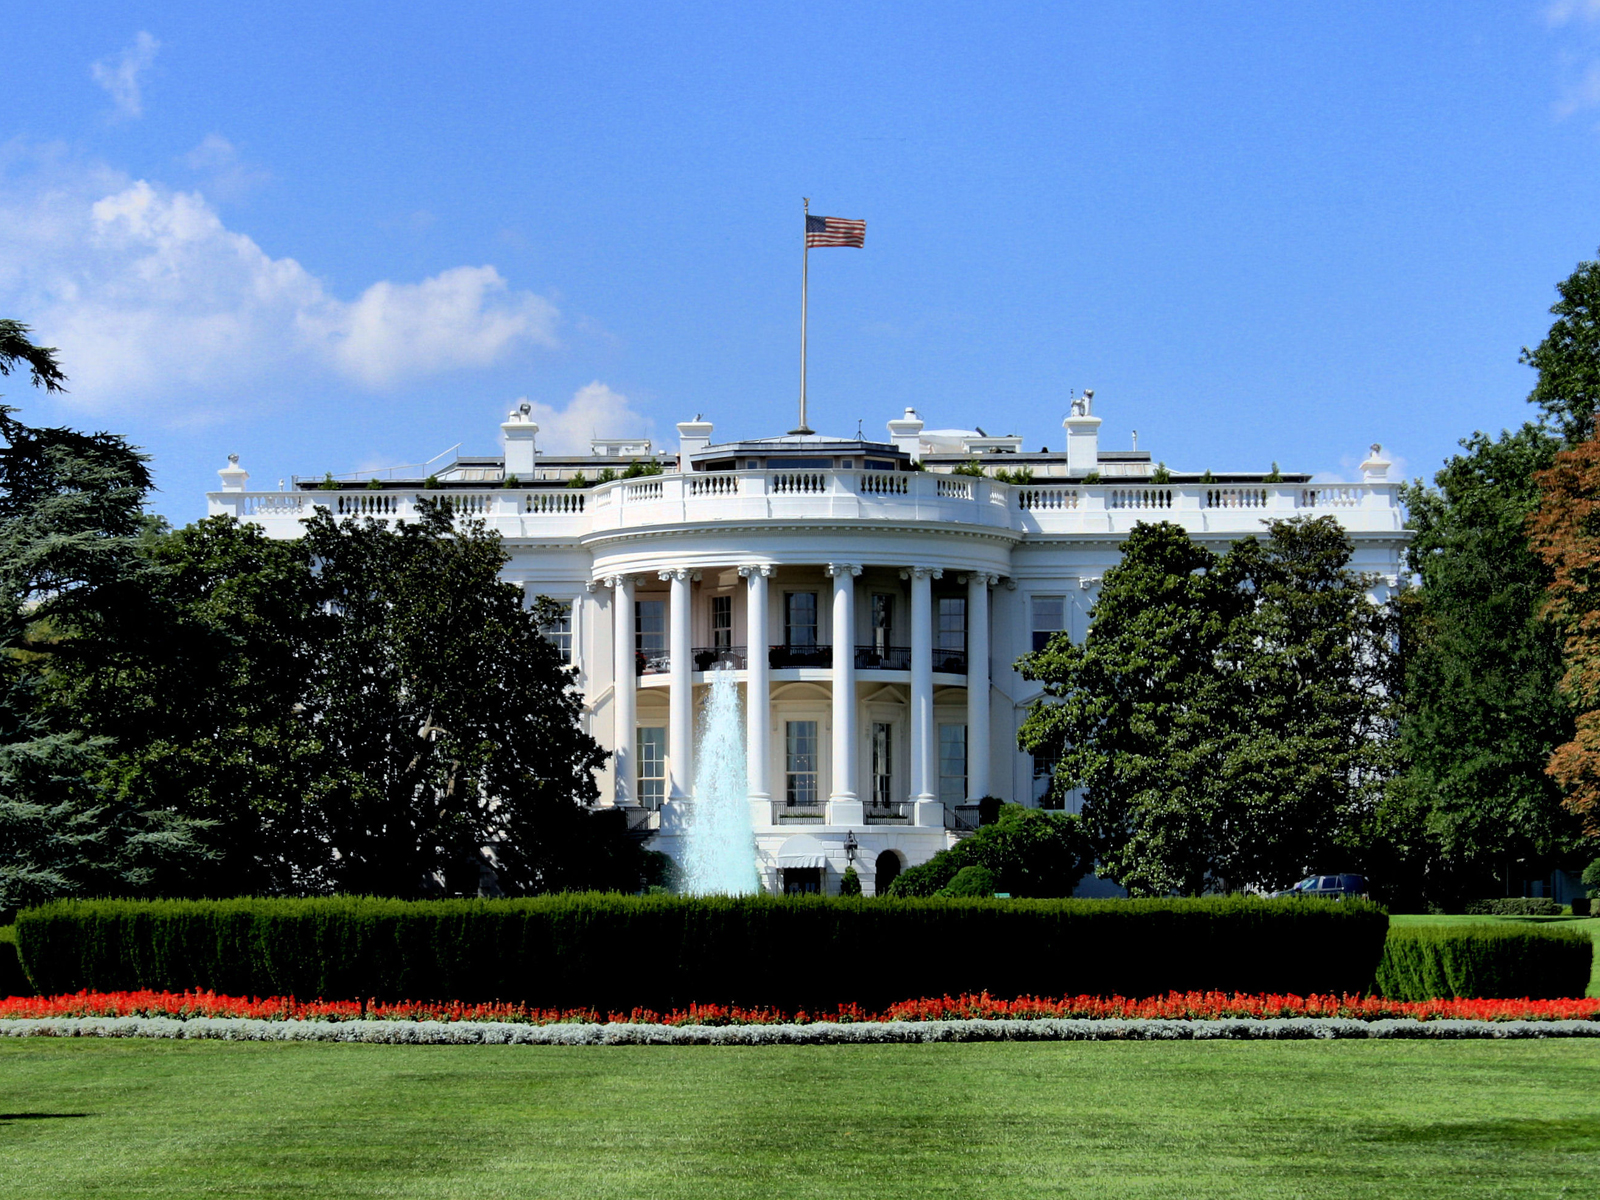 Best The White House Backgrounds for Desktop: August 17, 2015